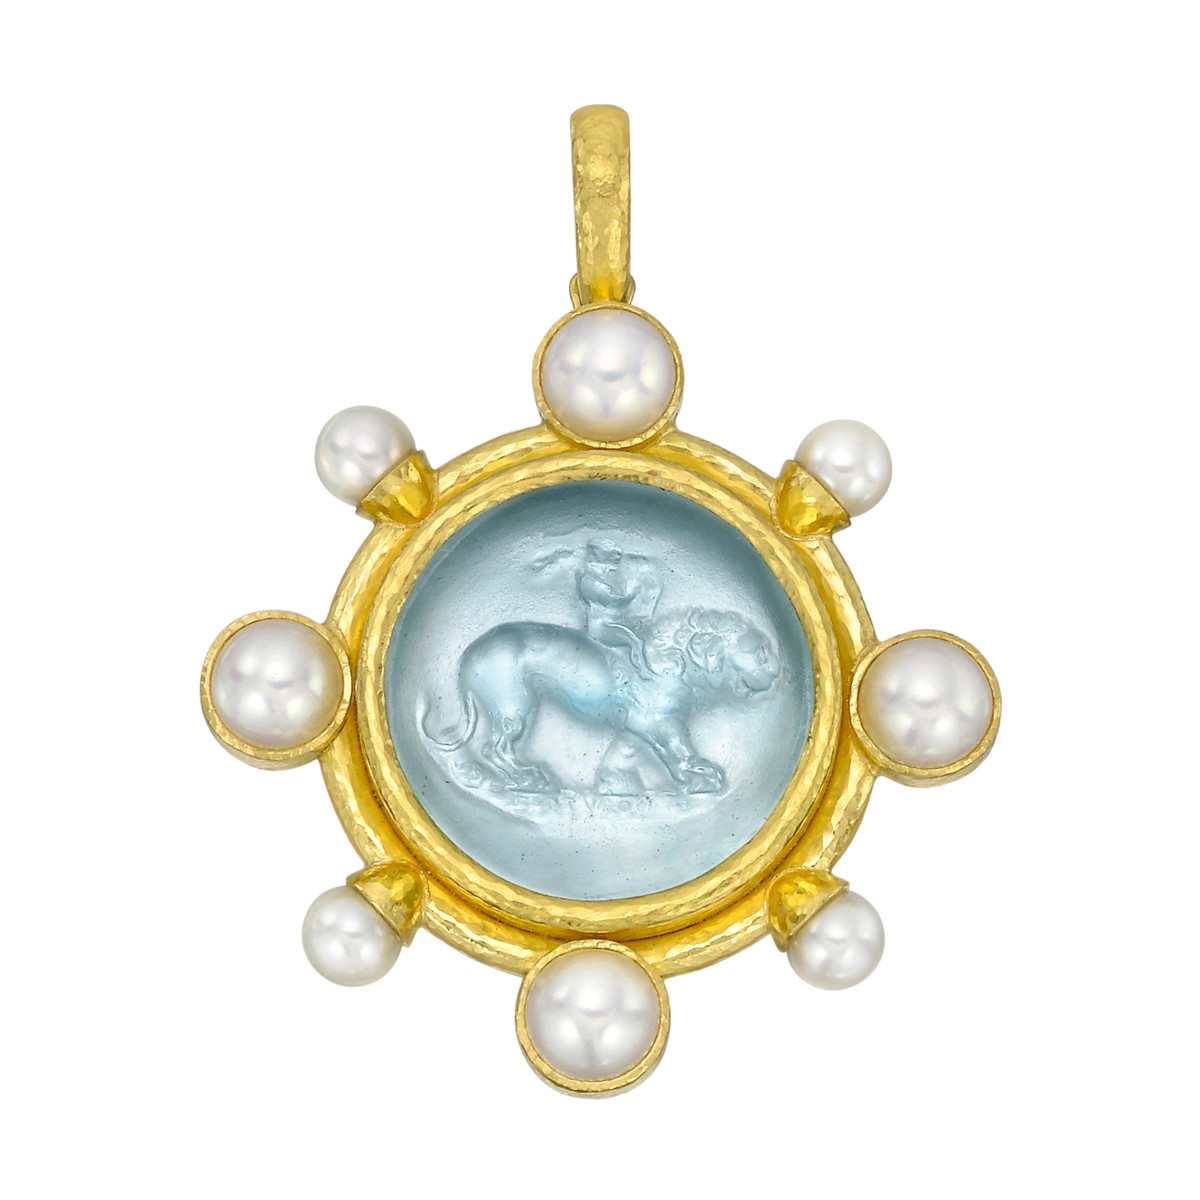 19k Yellow Gold & Venetian Glass Intaglio Pendant